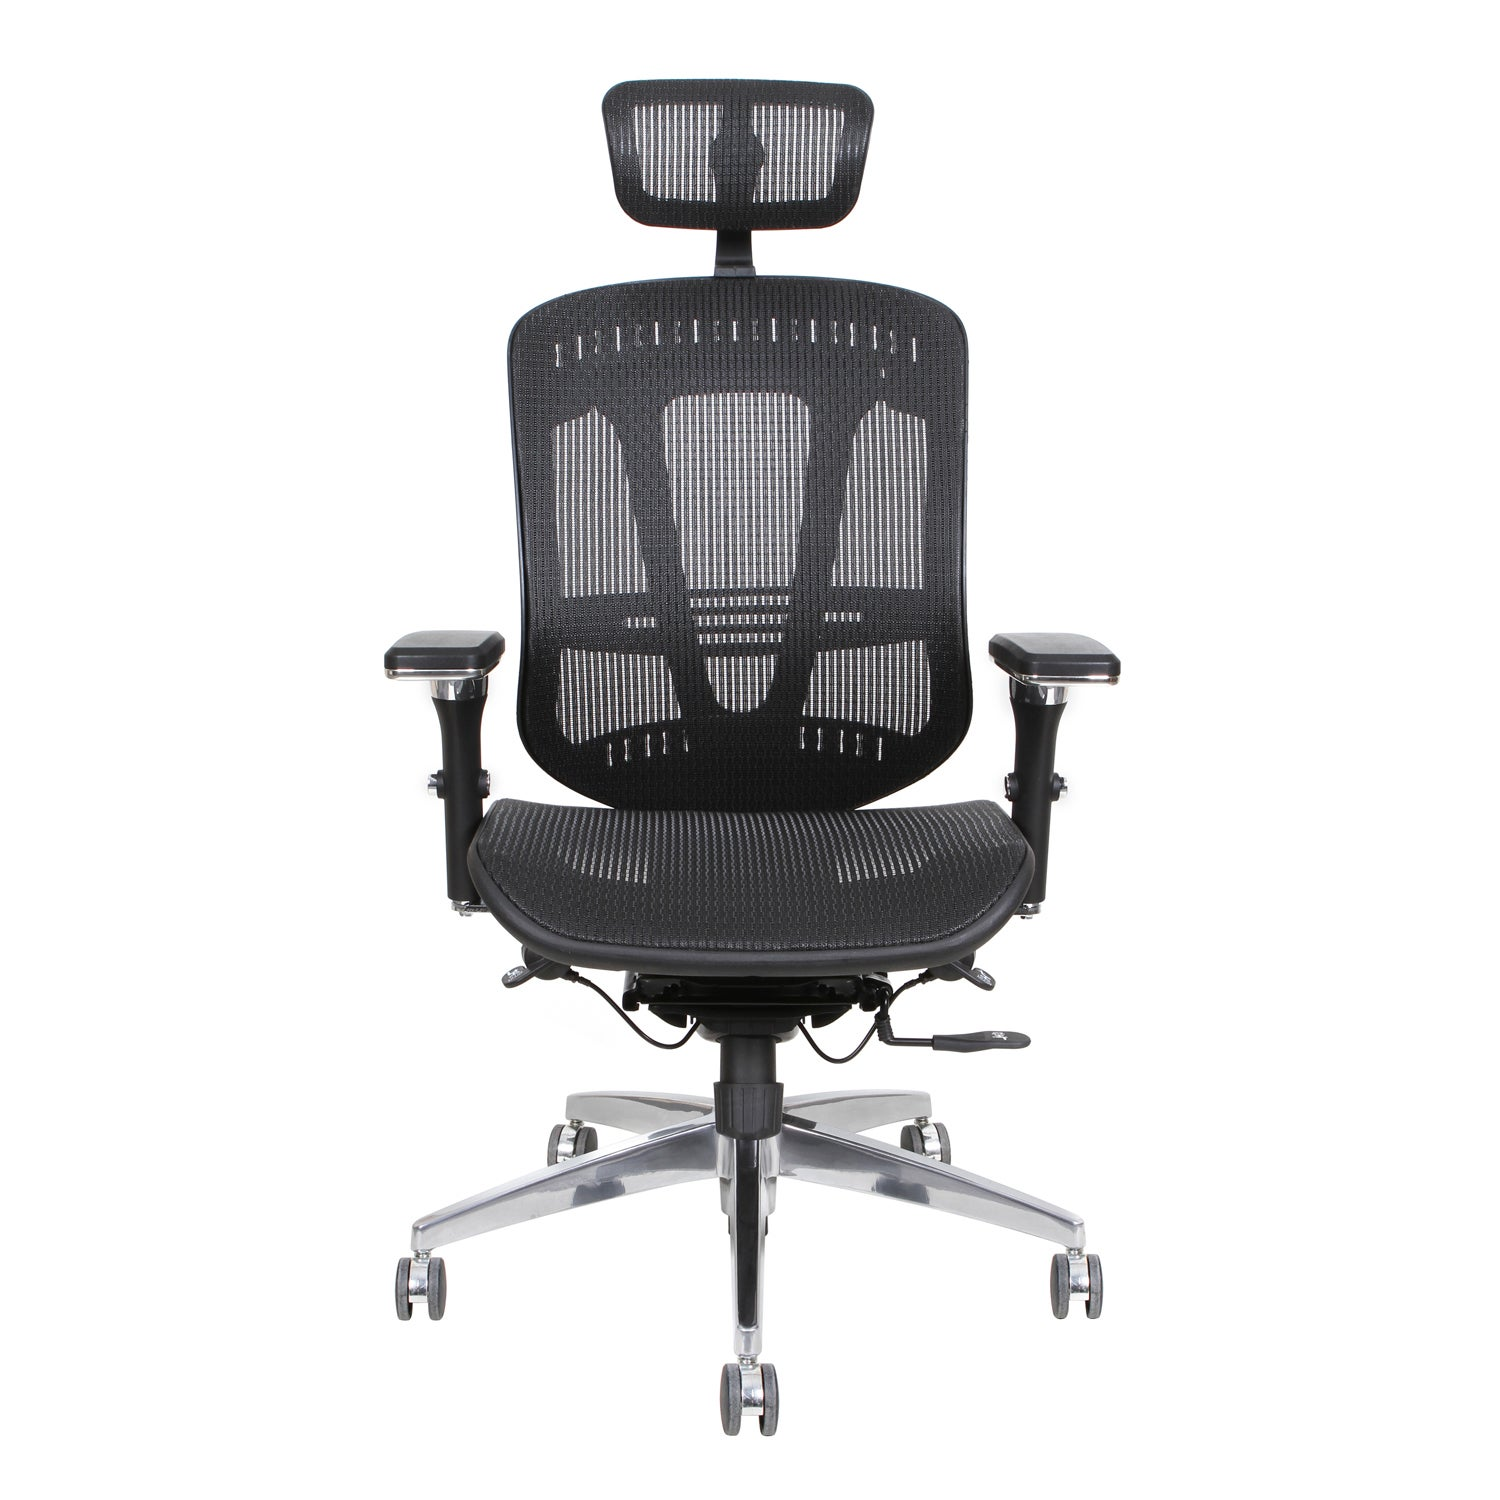 Shop Thorntonu0027s Office Supplies ErgoExec Black Mesh Metal/Plastic Swivel  Executive Office Chair   Free Shipping Today   Overstock   11862167